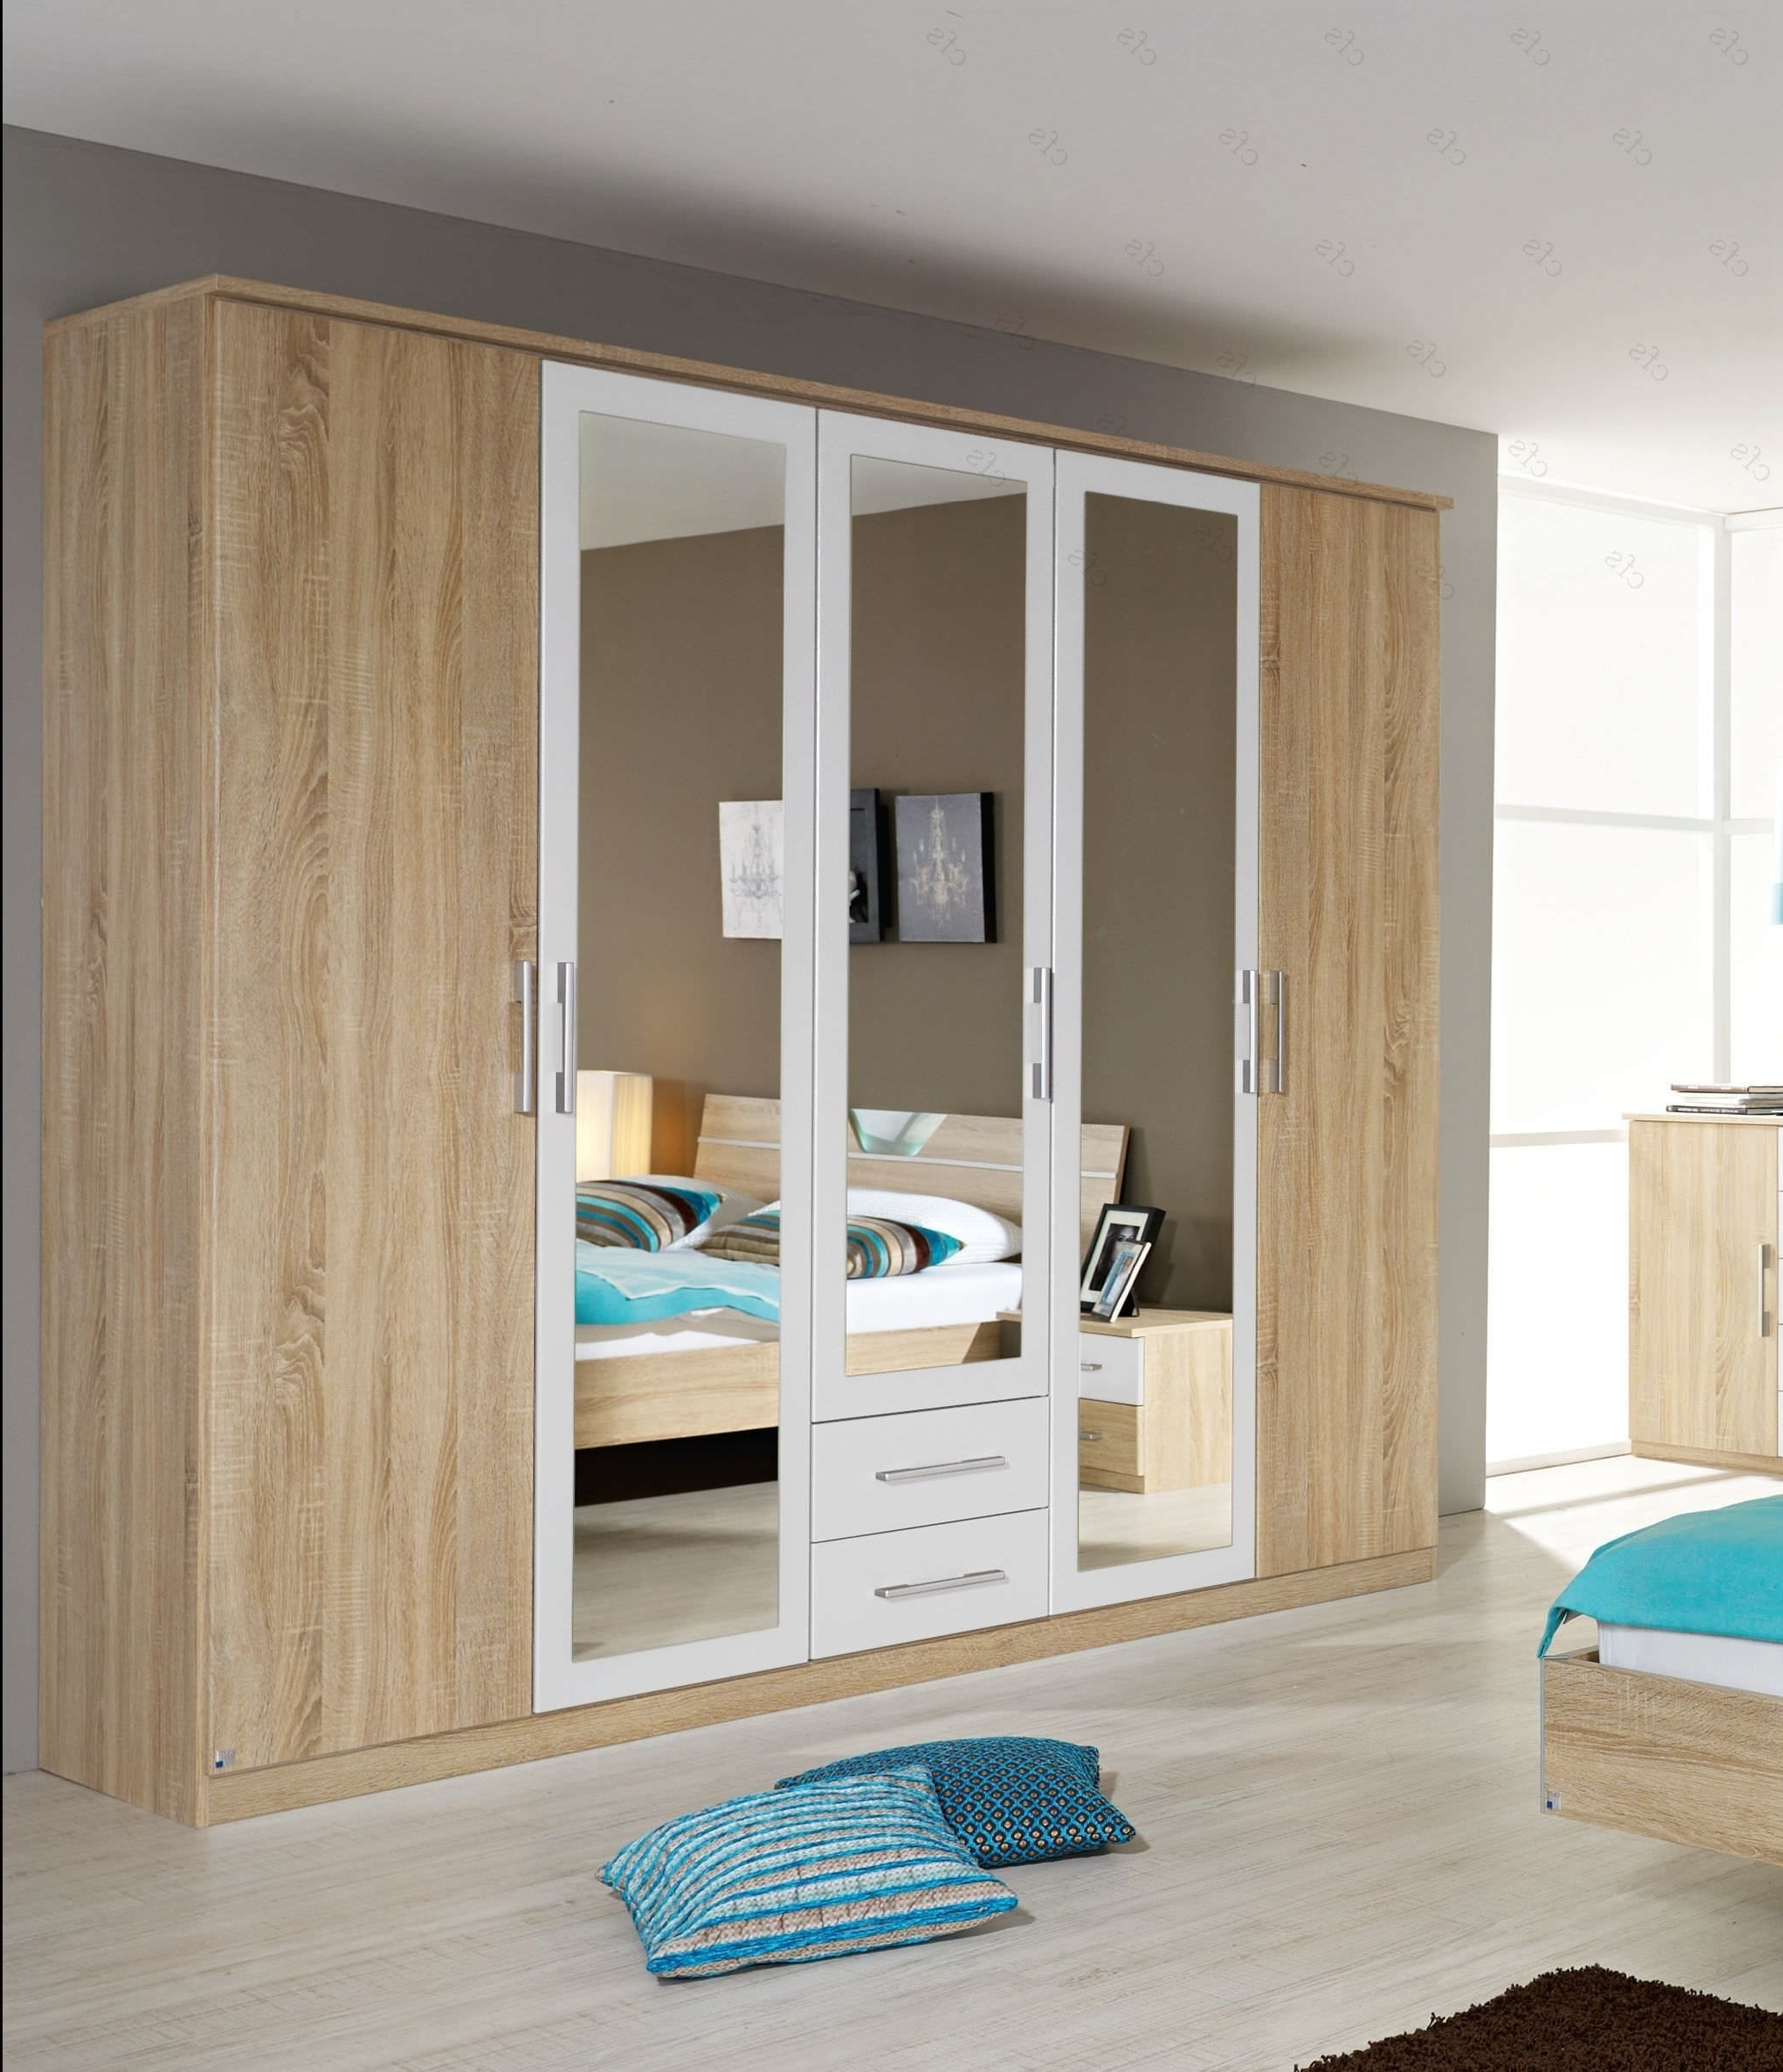 5 Door Wardrobes Bedroom Furniture In Latest 5 Door Wardrobe Bedroom Furniture (Gallery 2 of 15)